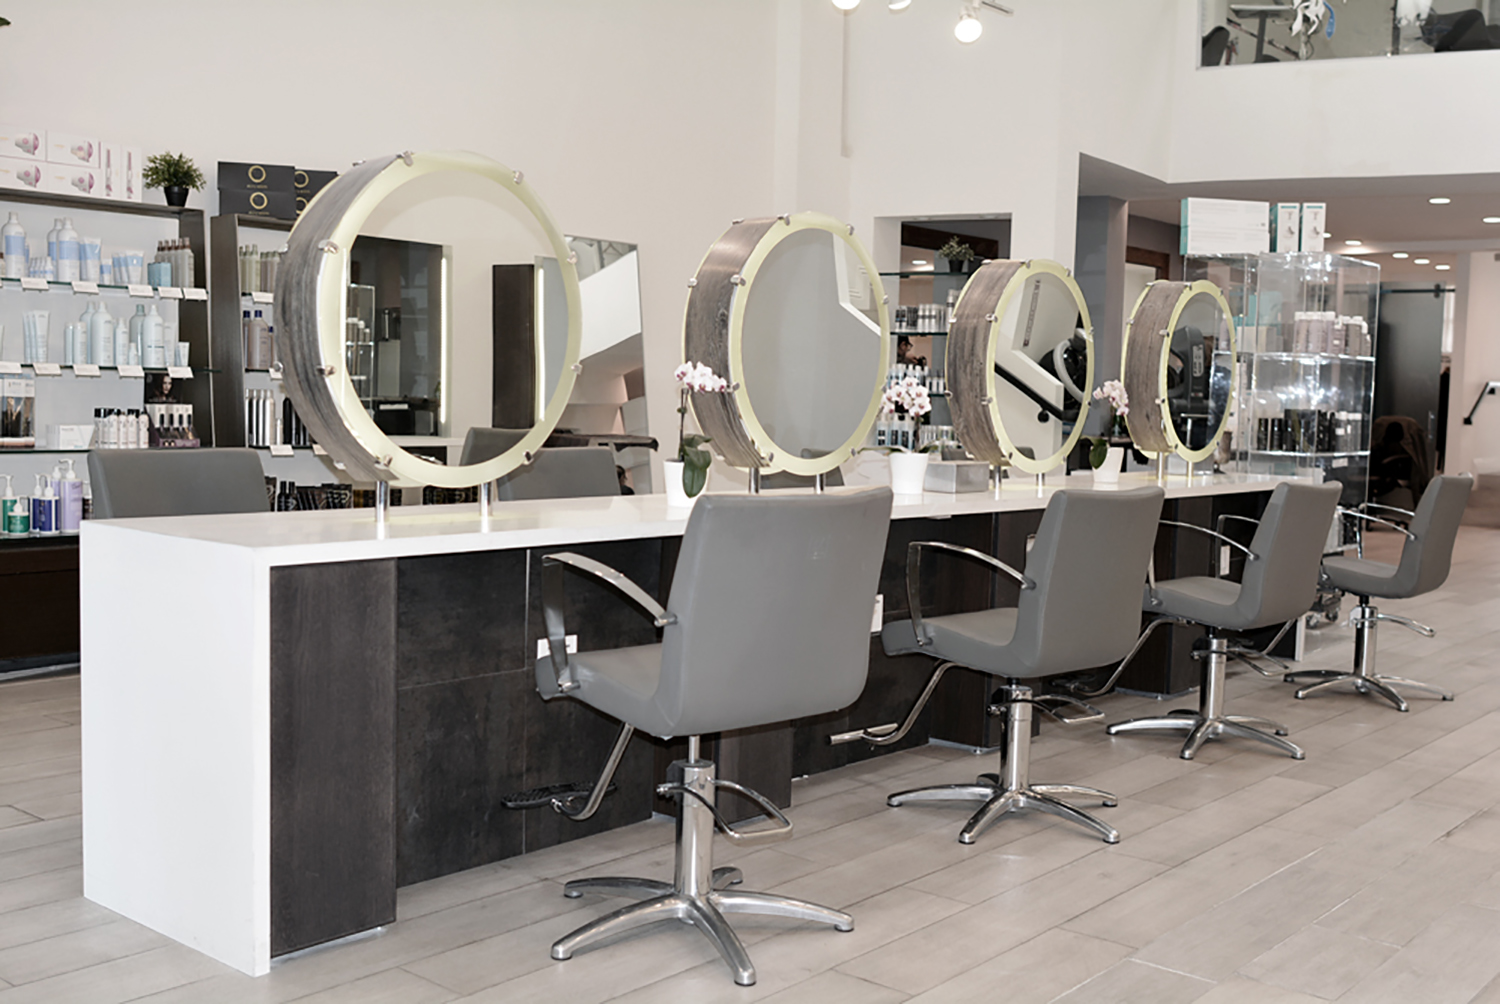 Nelson j Salon has expanded to a stunning 2,800 square-foot space in Beverly Hills.